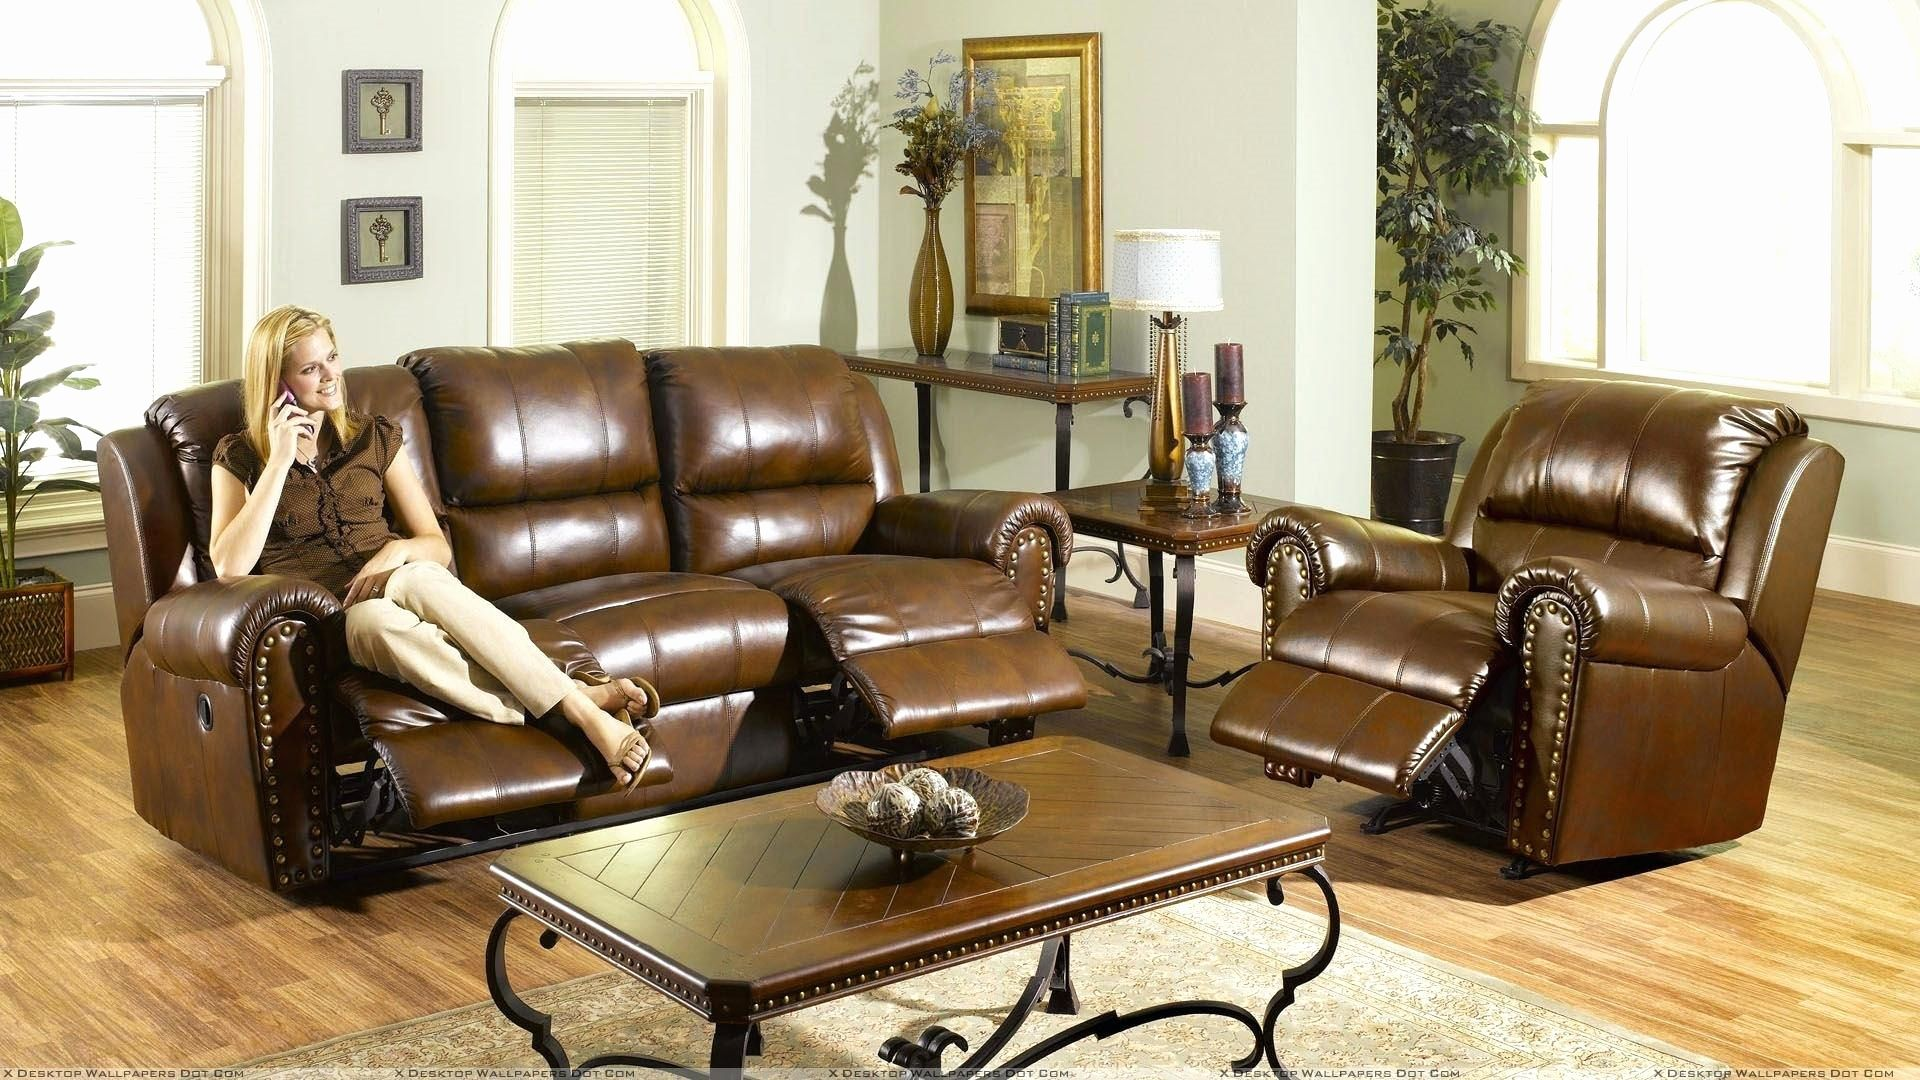 Fancy Sofa Set Design Danish Sofas London Pin By Great On Pinterest Home Interior New Shot Latest With Price Online Kandpfo Check More At